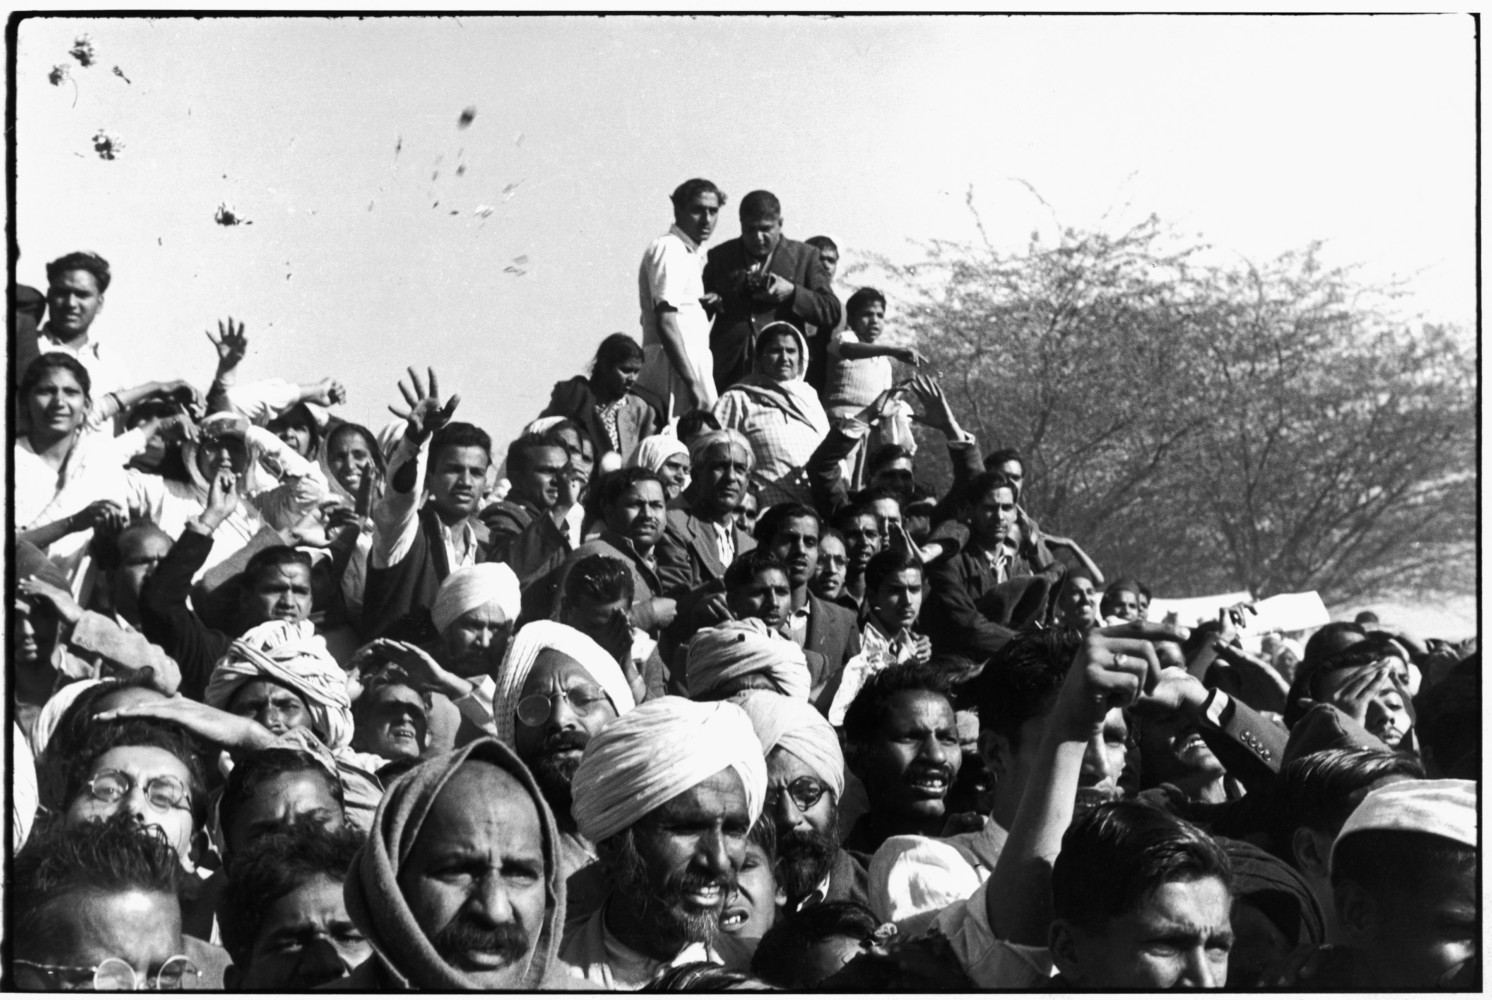 Crowds gathered between Birla House and the cremation grounds on the Jumna River, during Gandhi's funeral. Delhi, India. 1948. © Henri Cartier-Bresson | Magnum Photos